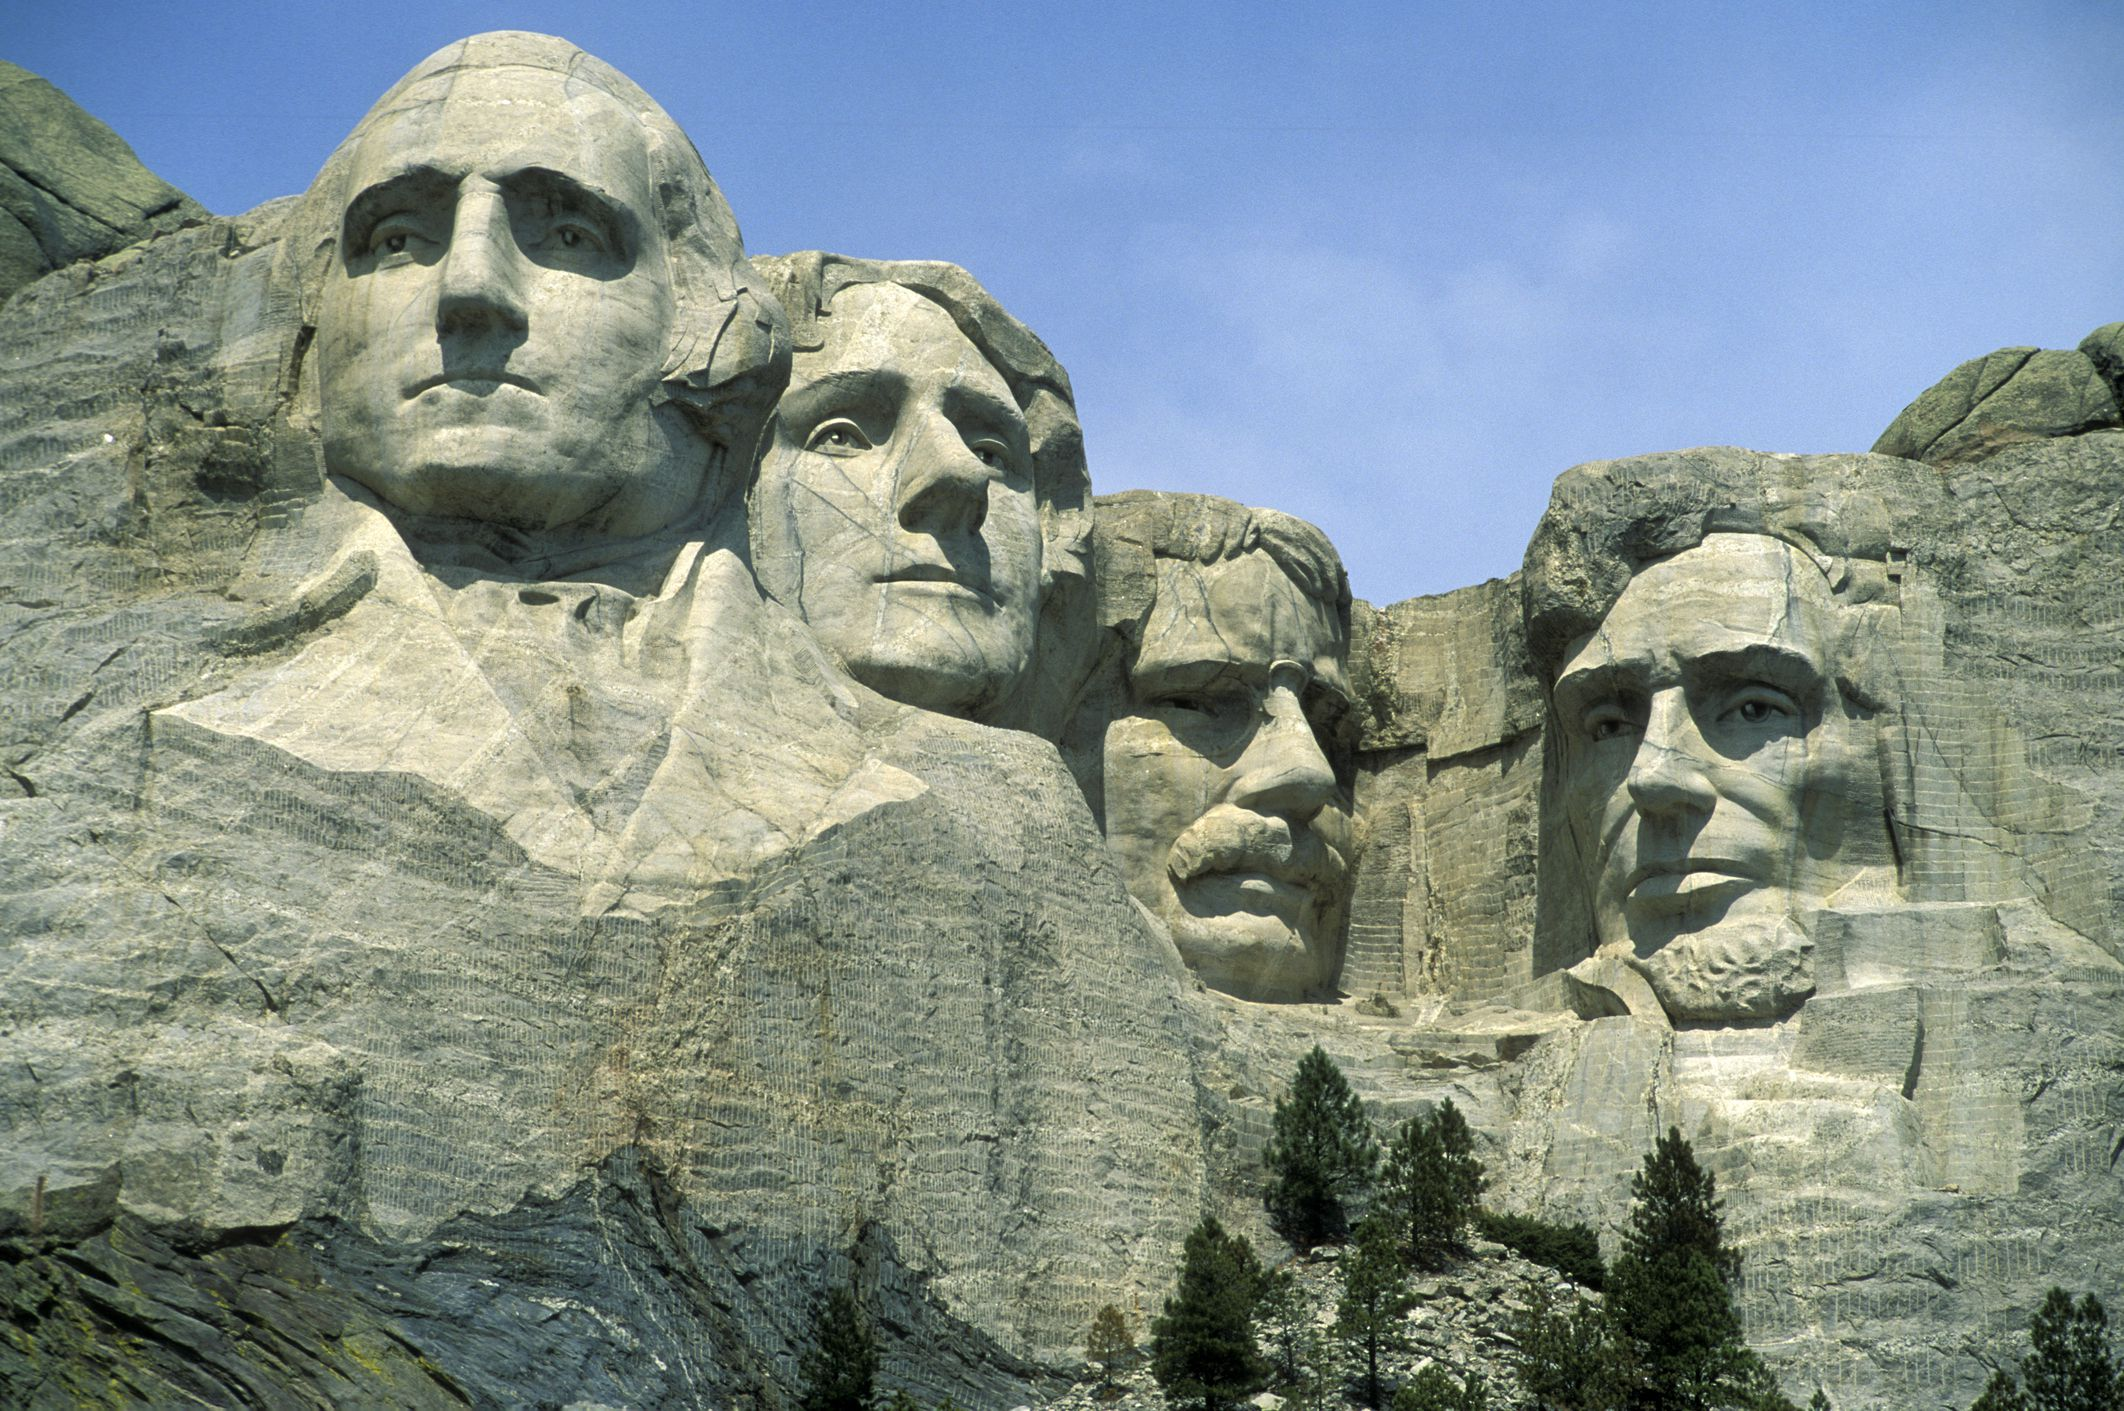 visit mount rushmore without leaving your home